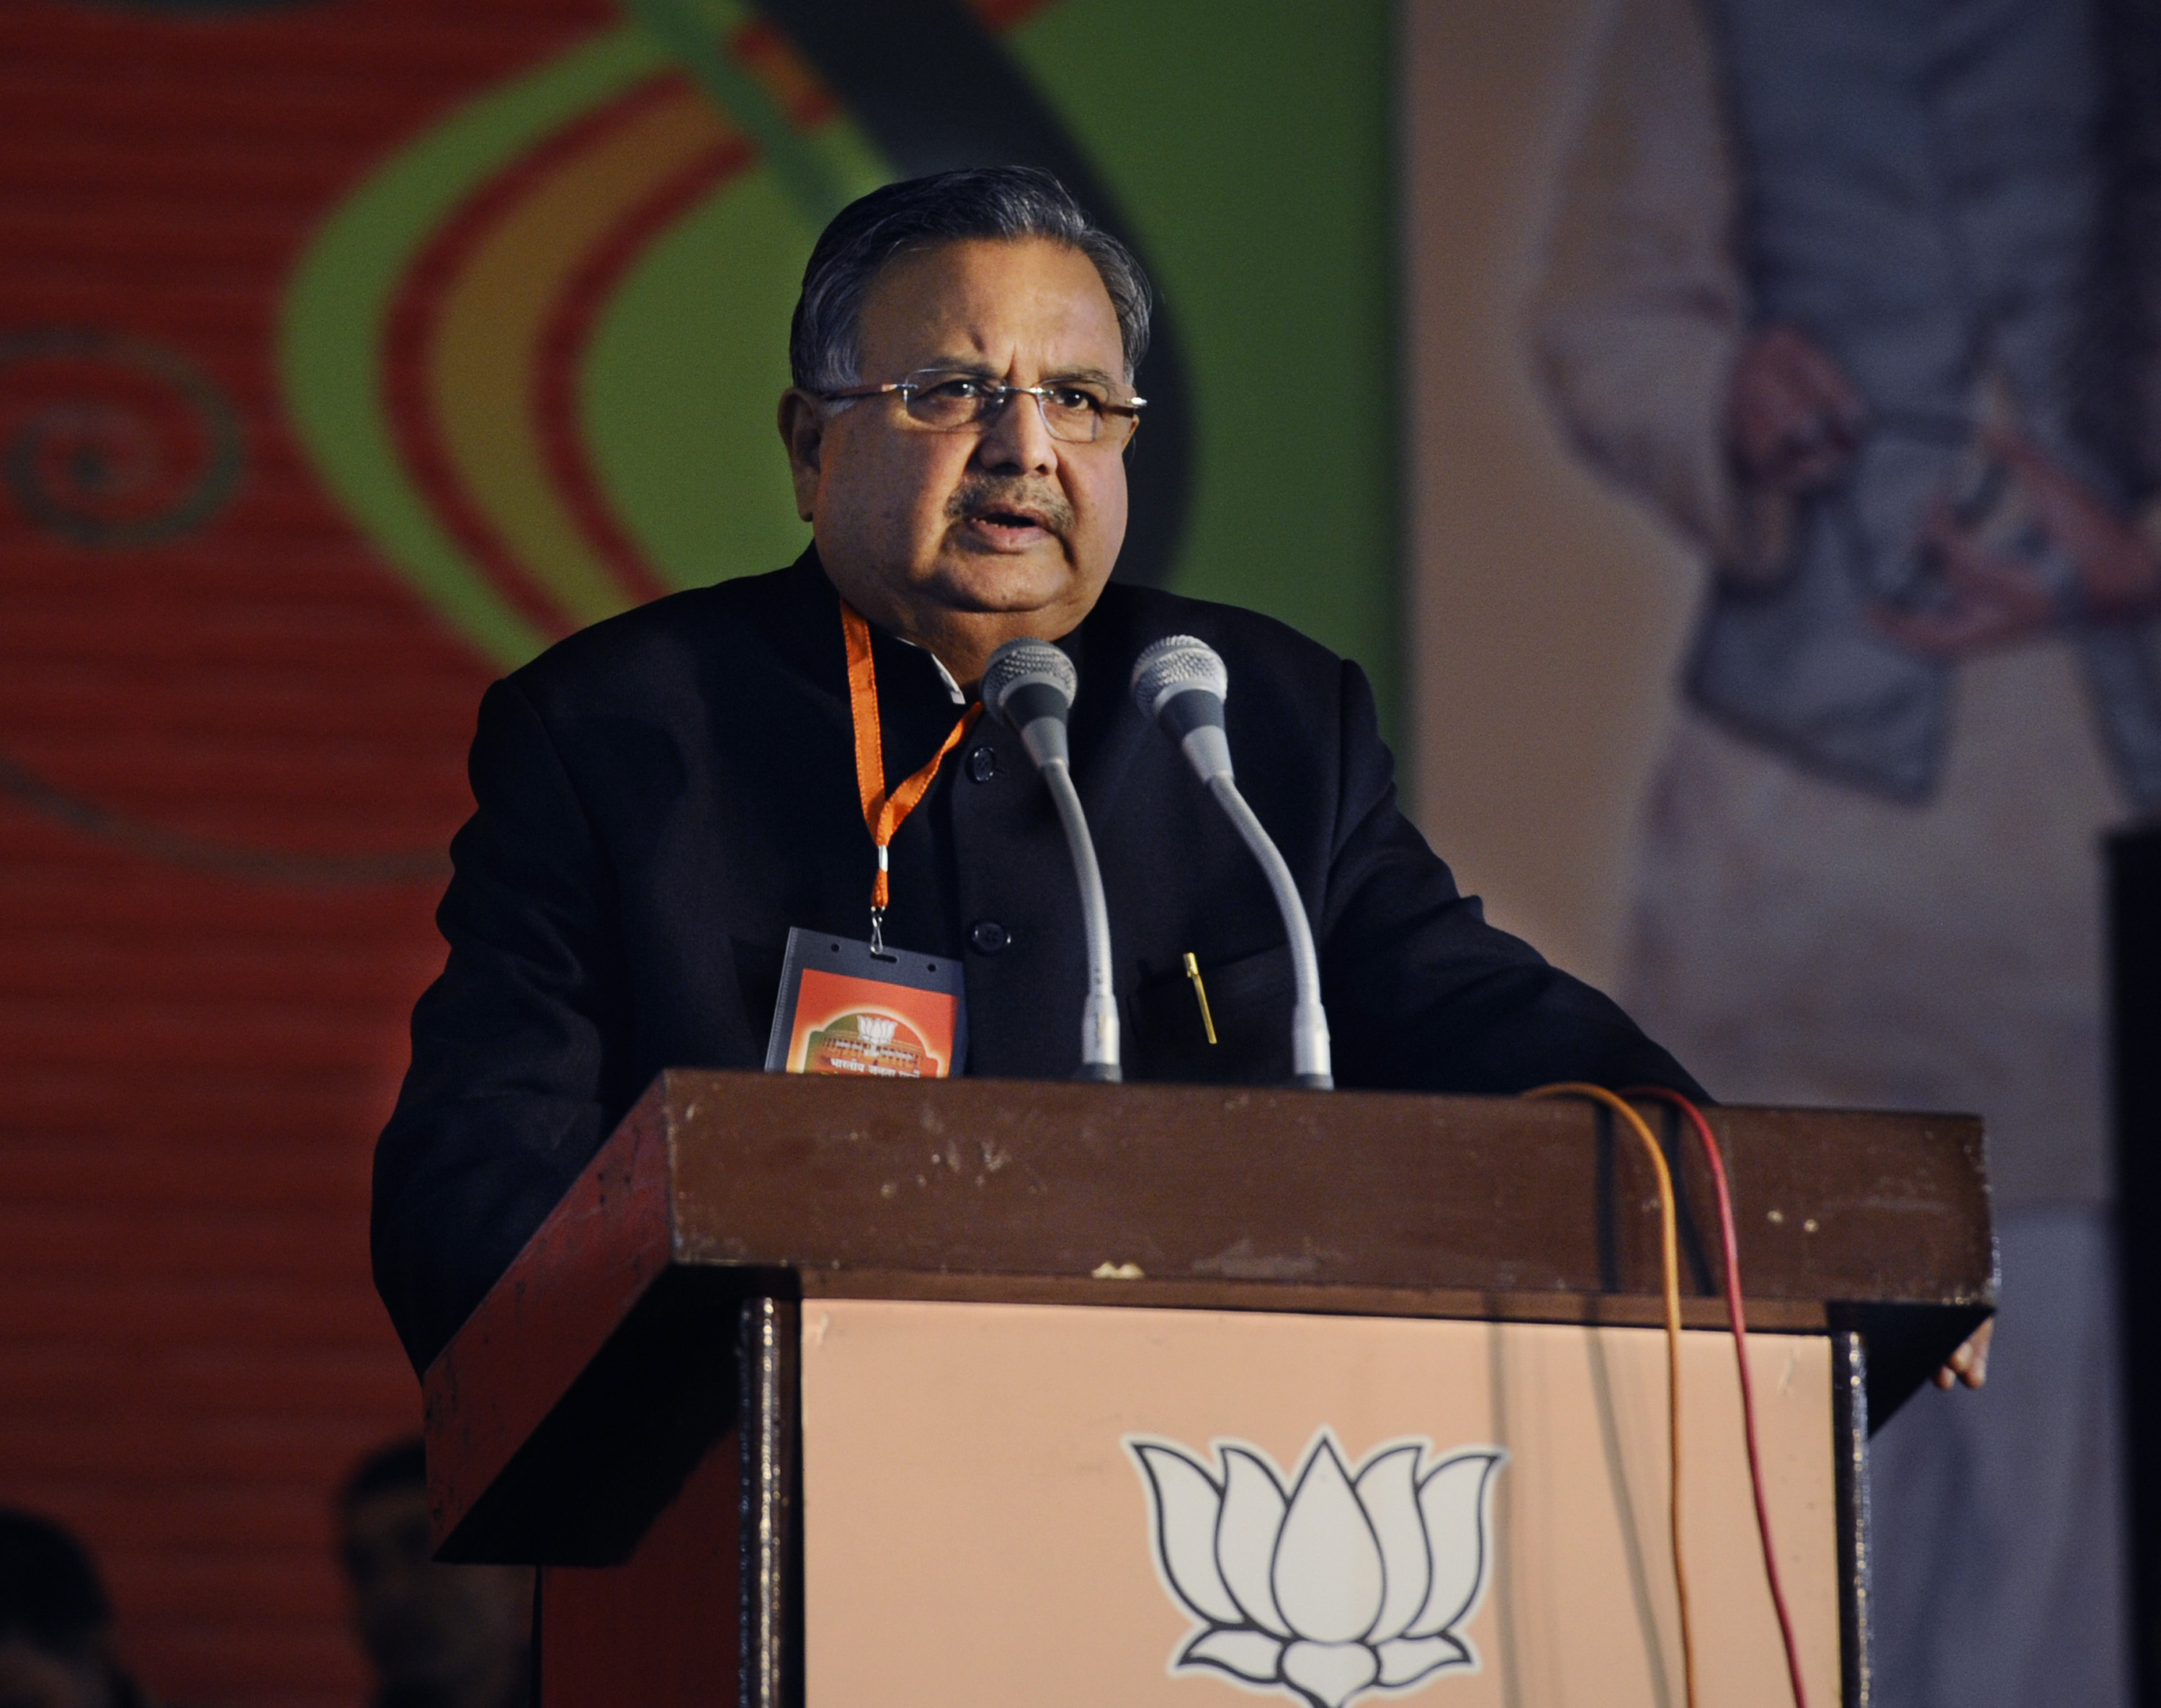 Raman Singh is also confident of victory for the BJP in the upcoming Assembly polls in the state